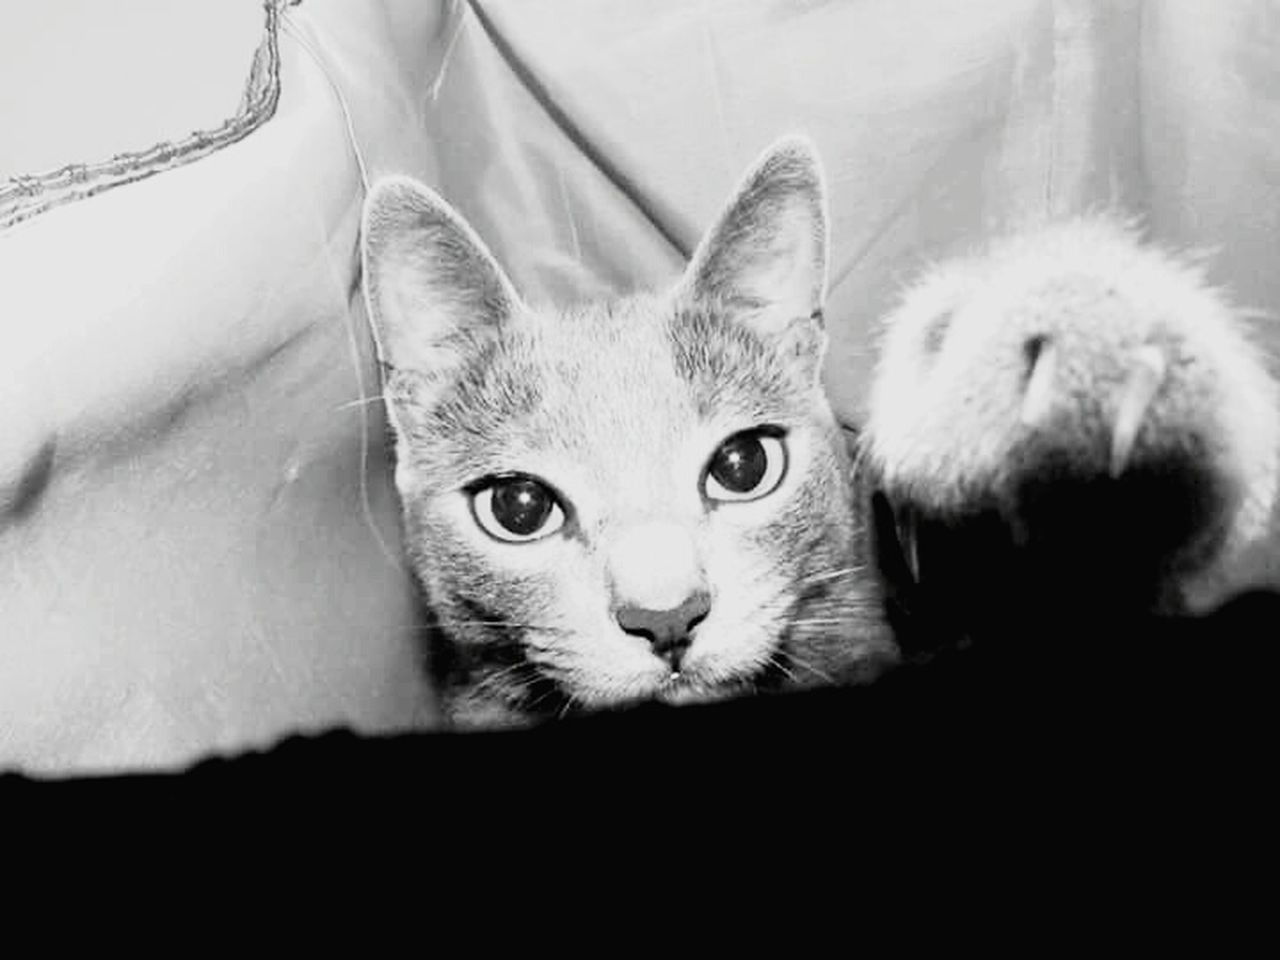 domestic cat, pets, looking at camera, domestic animals, animal themes, mammal, one animal, feline, portrait, cat, whisker, indoors, no people, close-up, day, kitten, siamese cat, nature